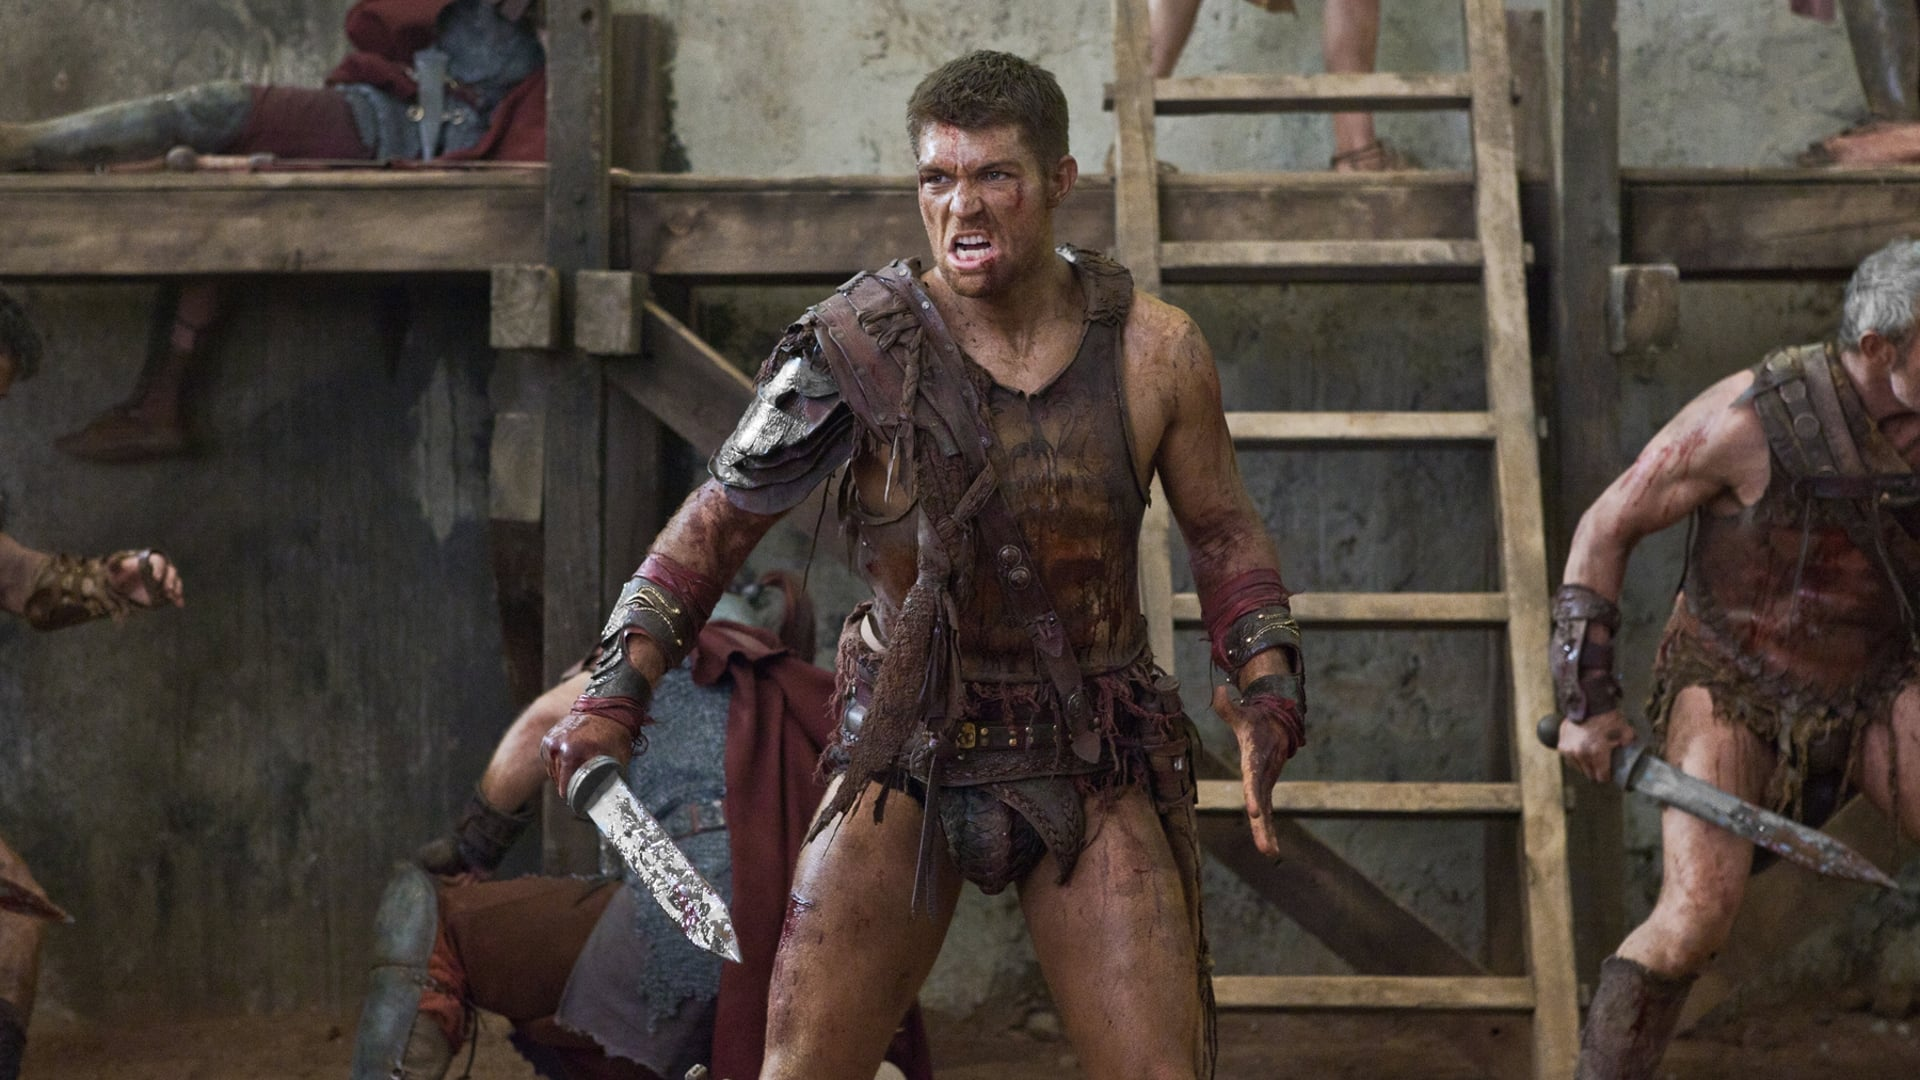 spartacus film essay Spartacus (greek: σπάρτακος spártakos latin: spartacus c 111-71 bc) was a thracian gladiator who, along with the gauls crixus, gannicus, castus, and oenomaus, was one of the escaped slave leaders in the third servile war, a major slave uprising against the roman republic little is known about spartacus beyond the events of the.